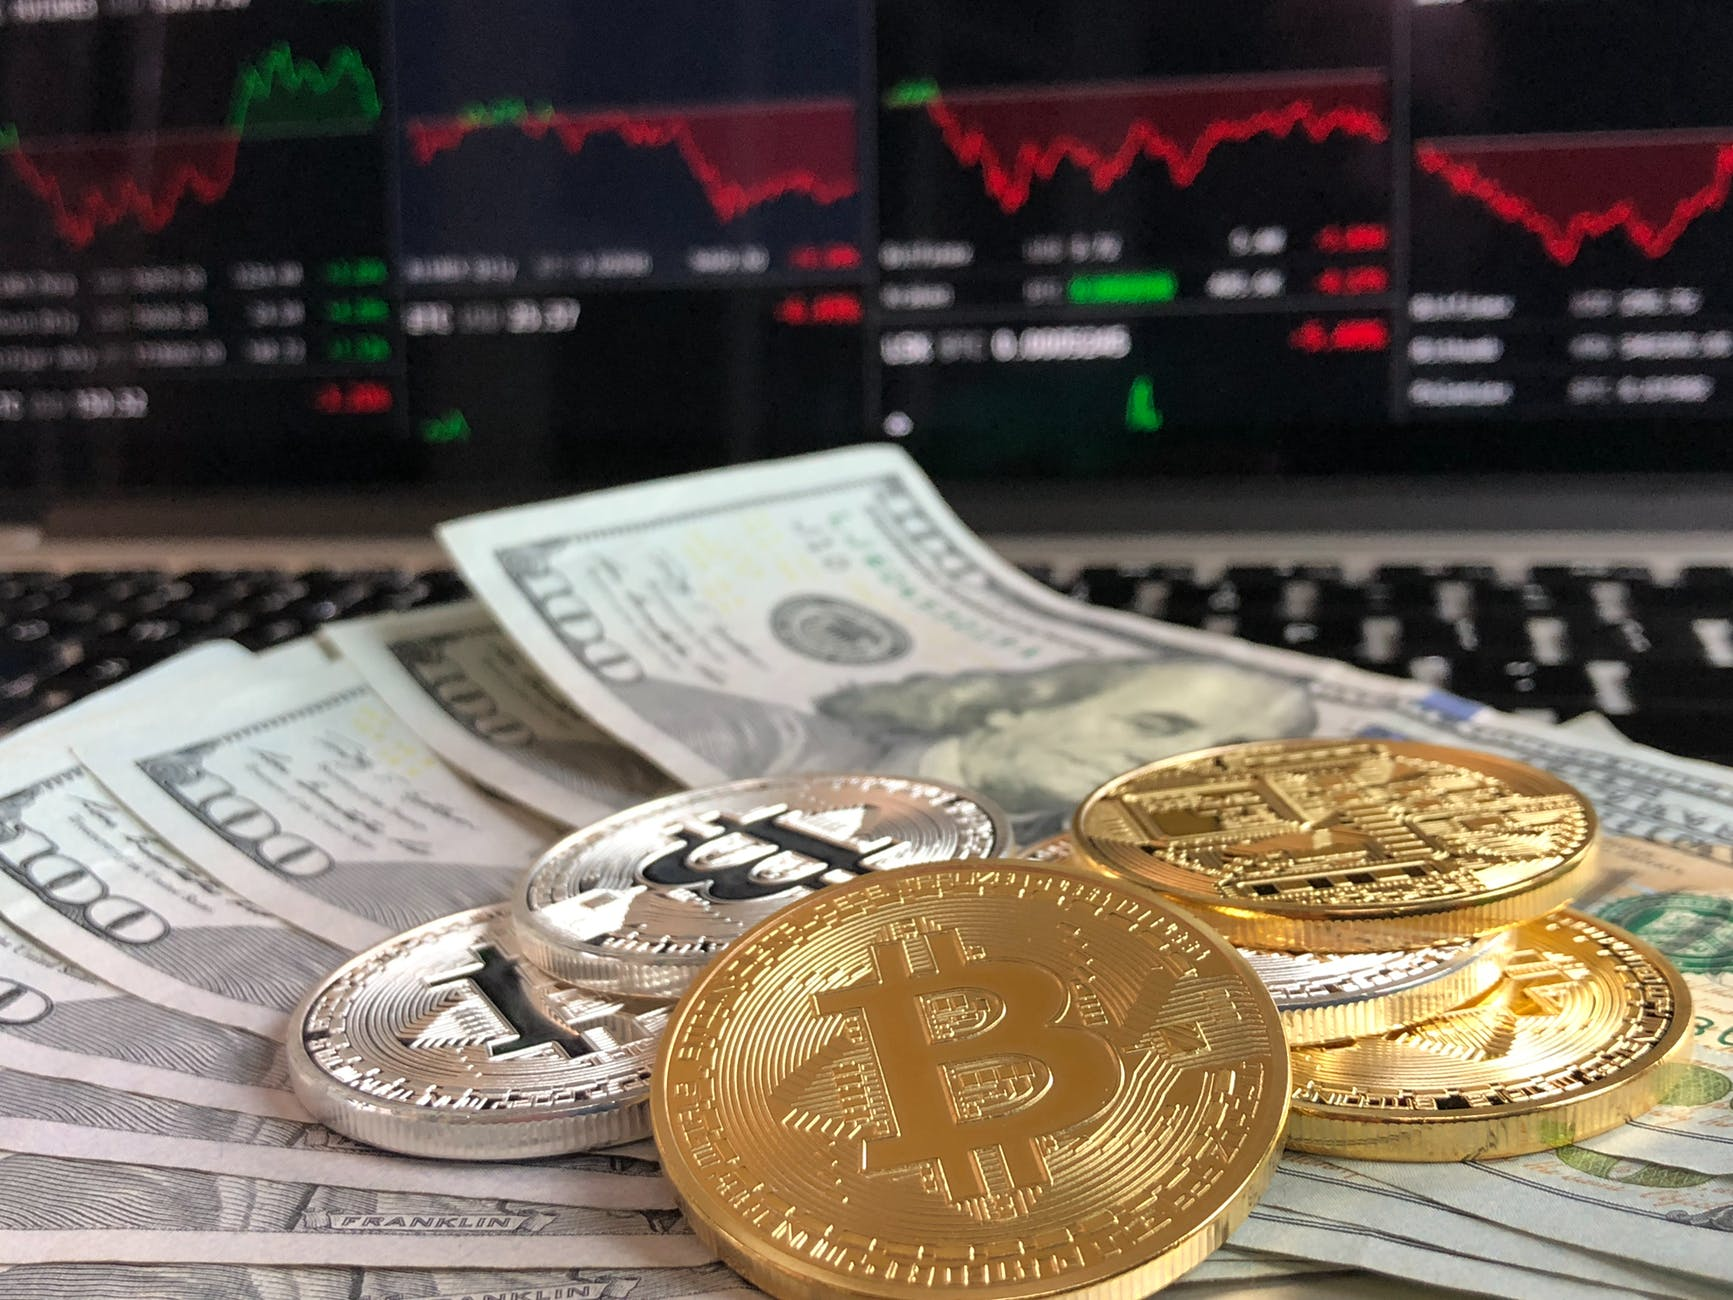 Things that can be purchased with Bitcoin - MONEY IN CRYPTO